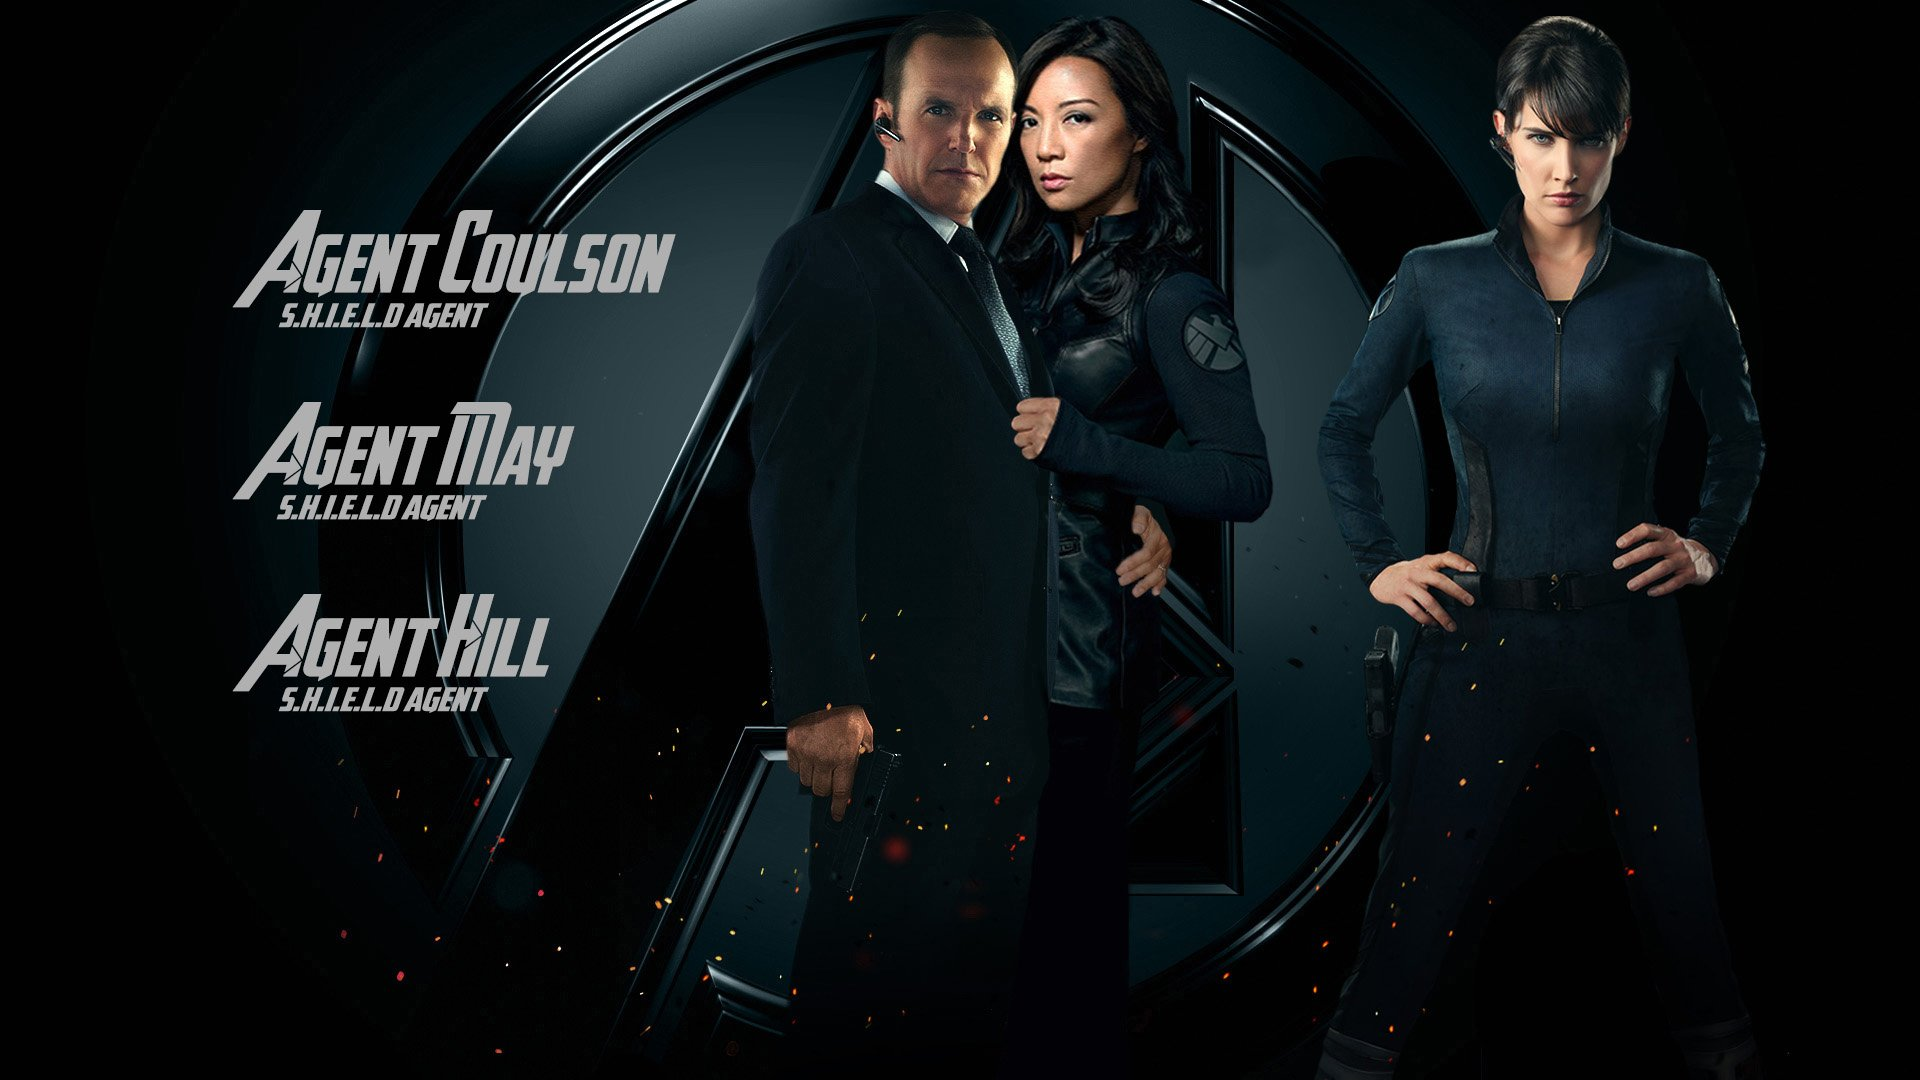 AGENTS OF SHIELD Action Drama Sci Fi Marvel Comic Series Crime 44 Wallpaper